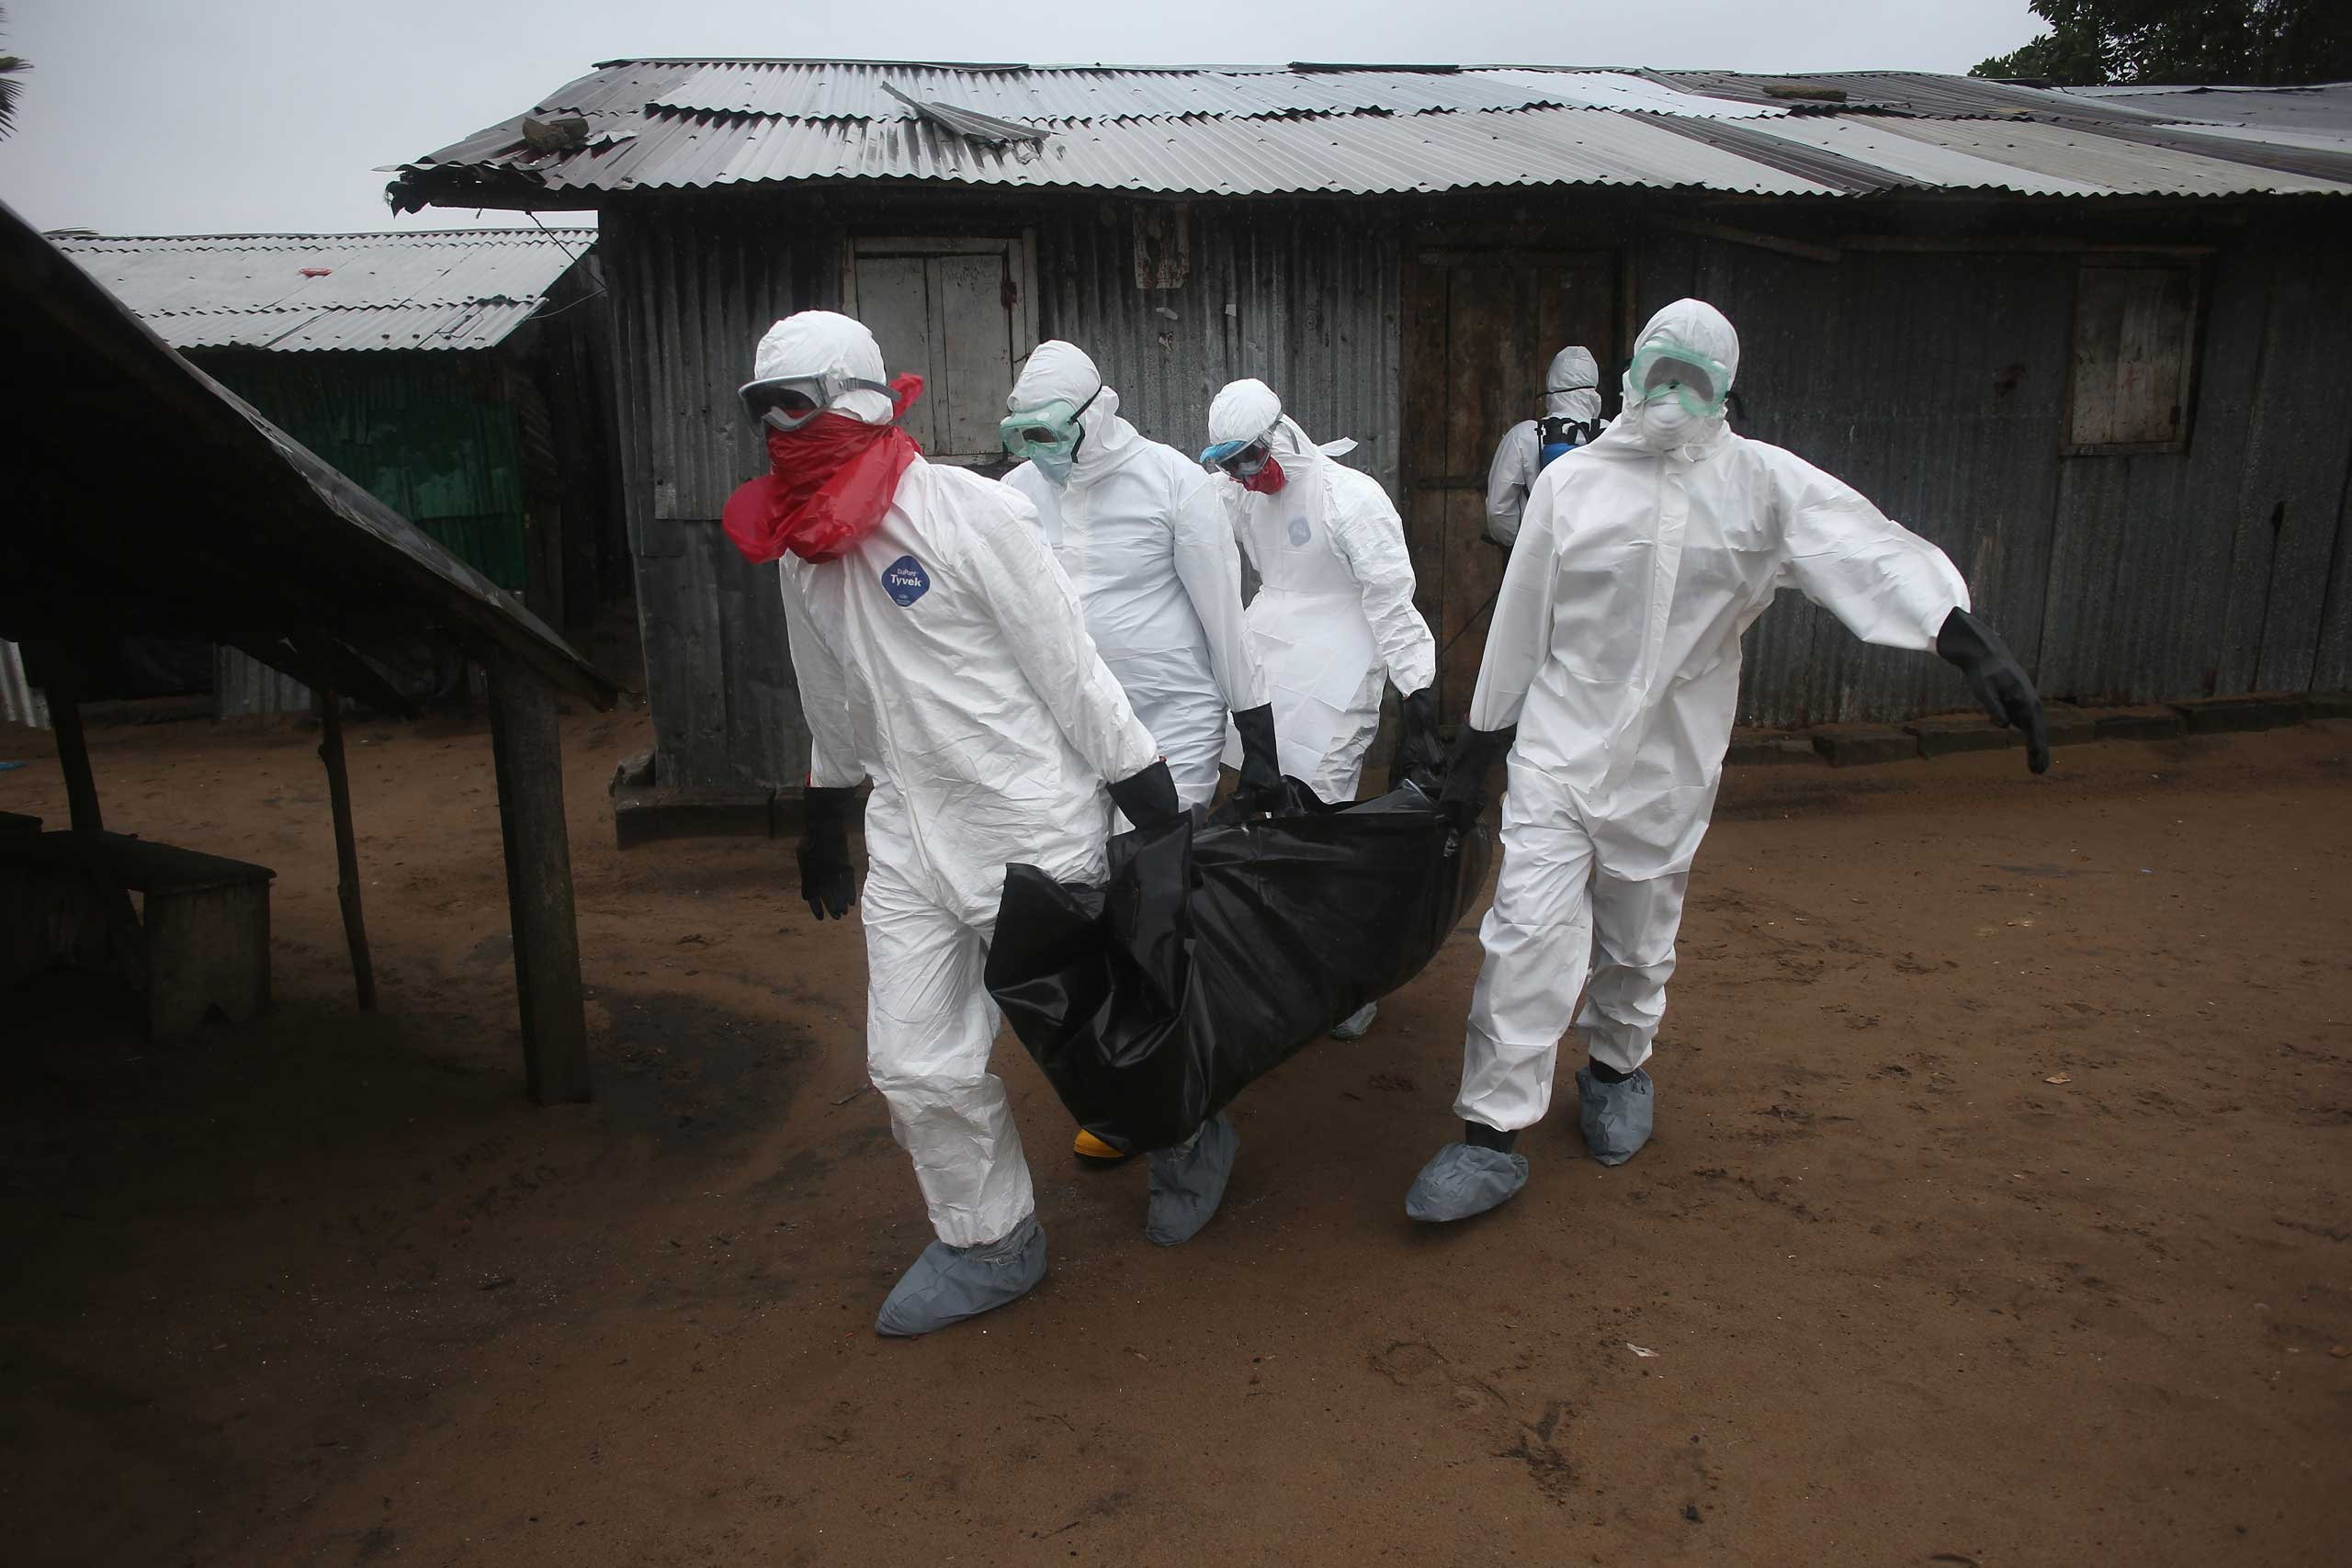 A Liberian burial team wearing protective clothing retrieves the body of a 60-year-old Ebola victim from his home on Aug. 17, 2014 near Monrovia.